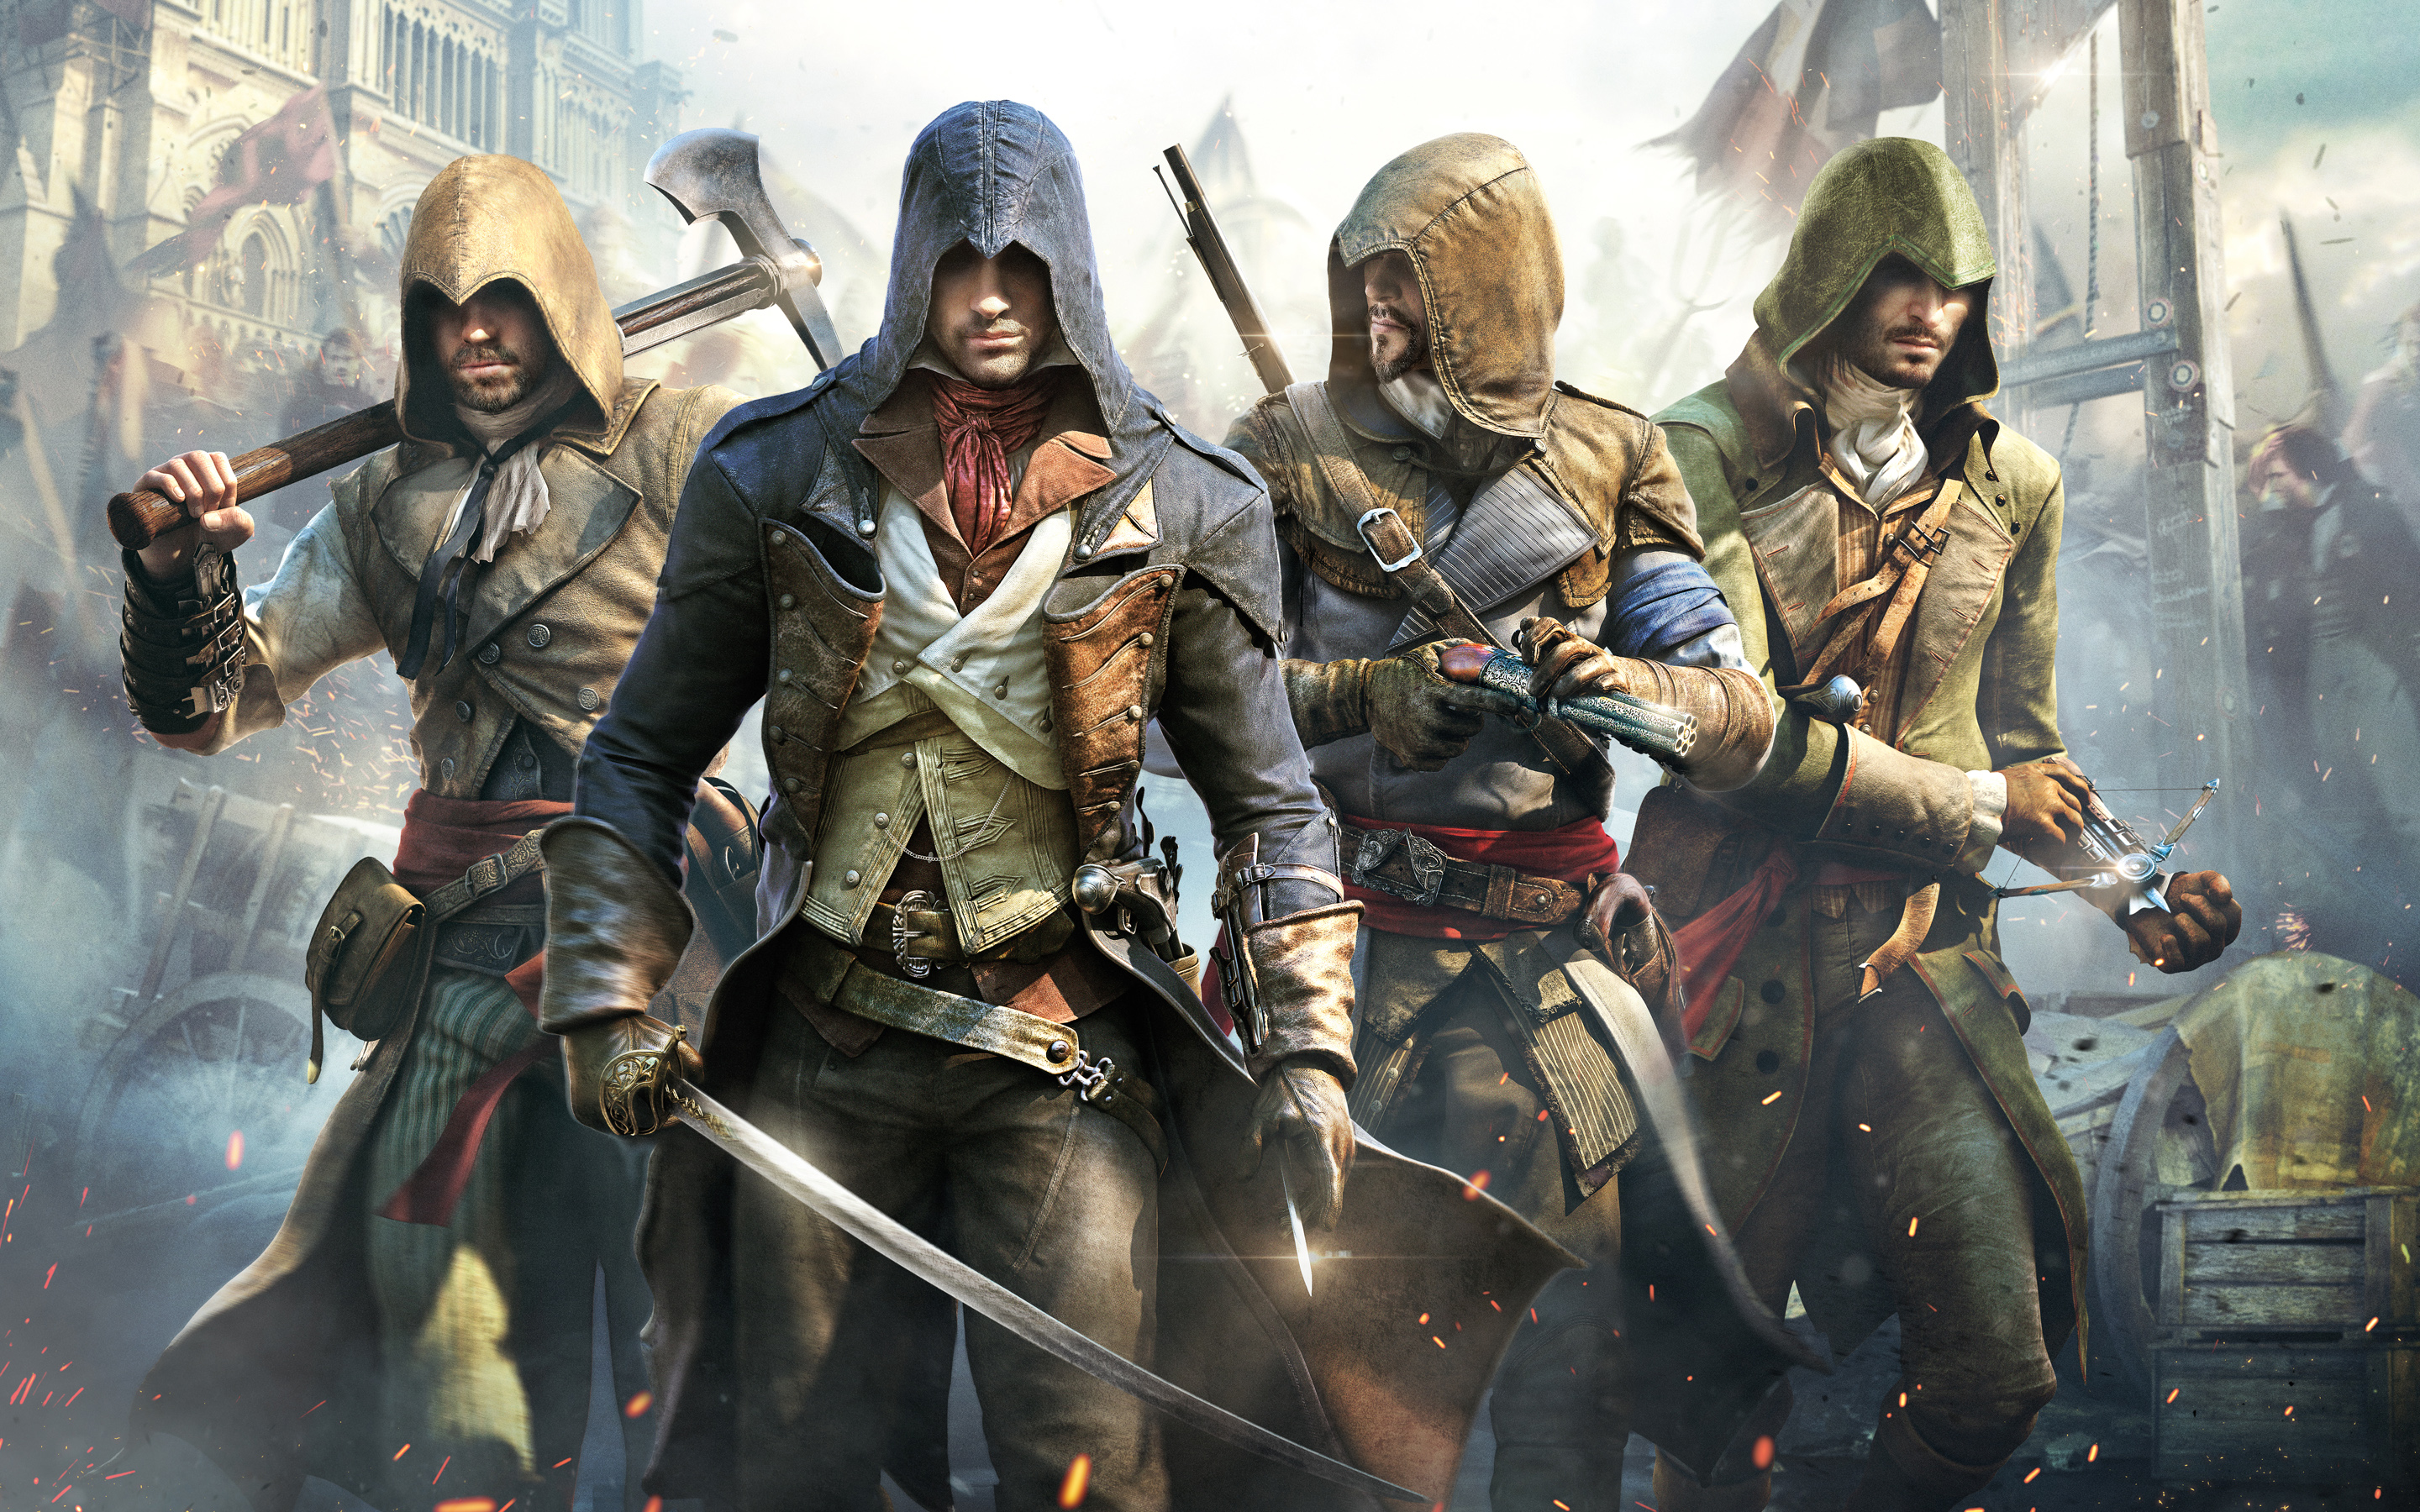 Awesome Assassins Creed Unity Wallpaper 2880x1800 25284